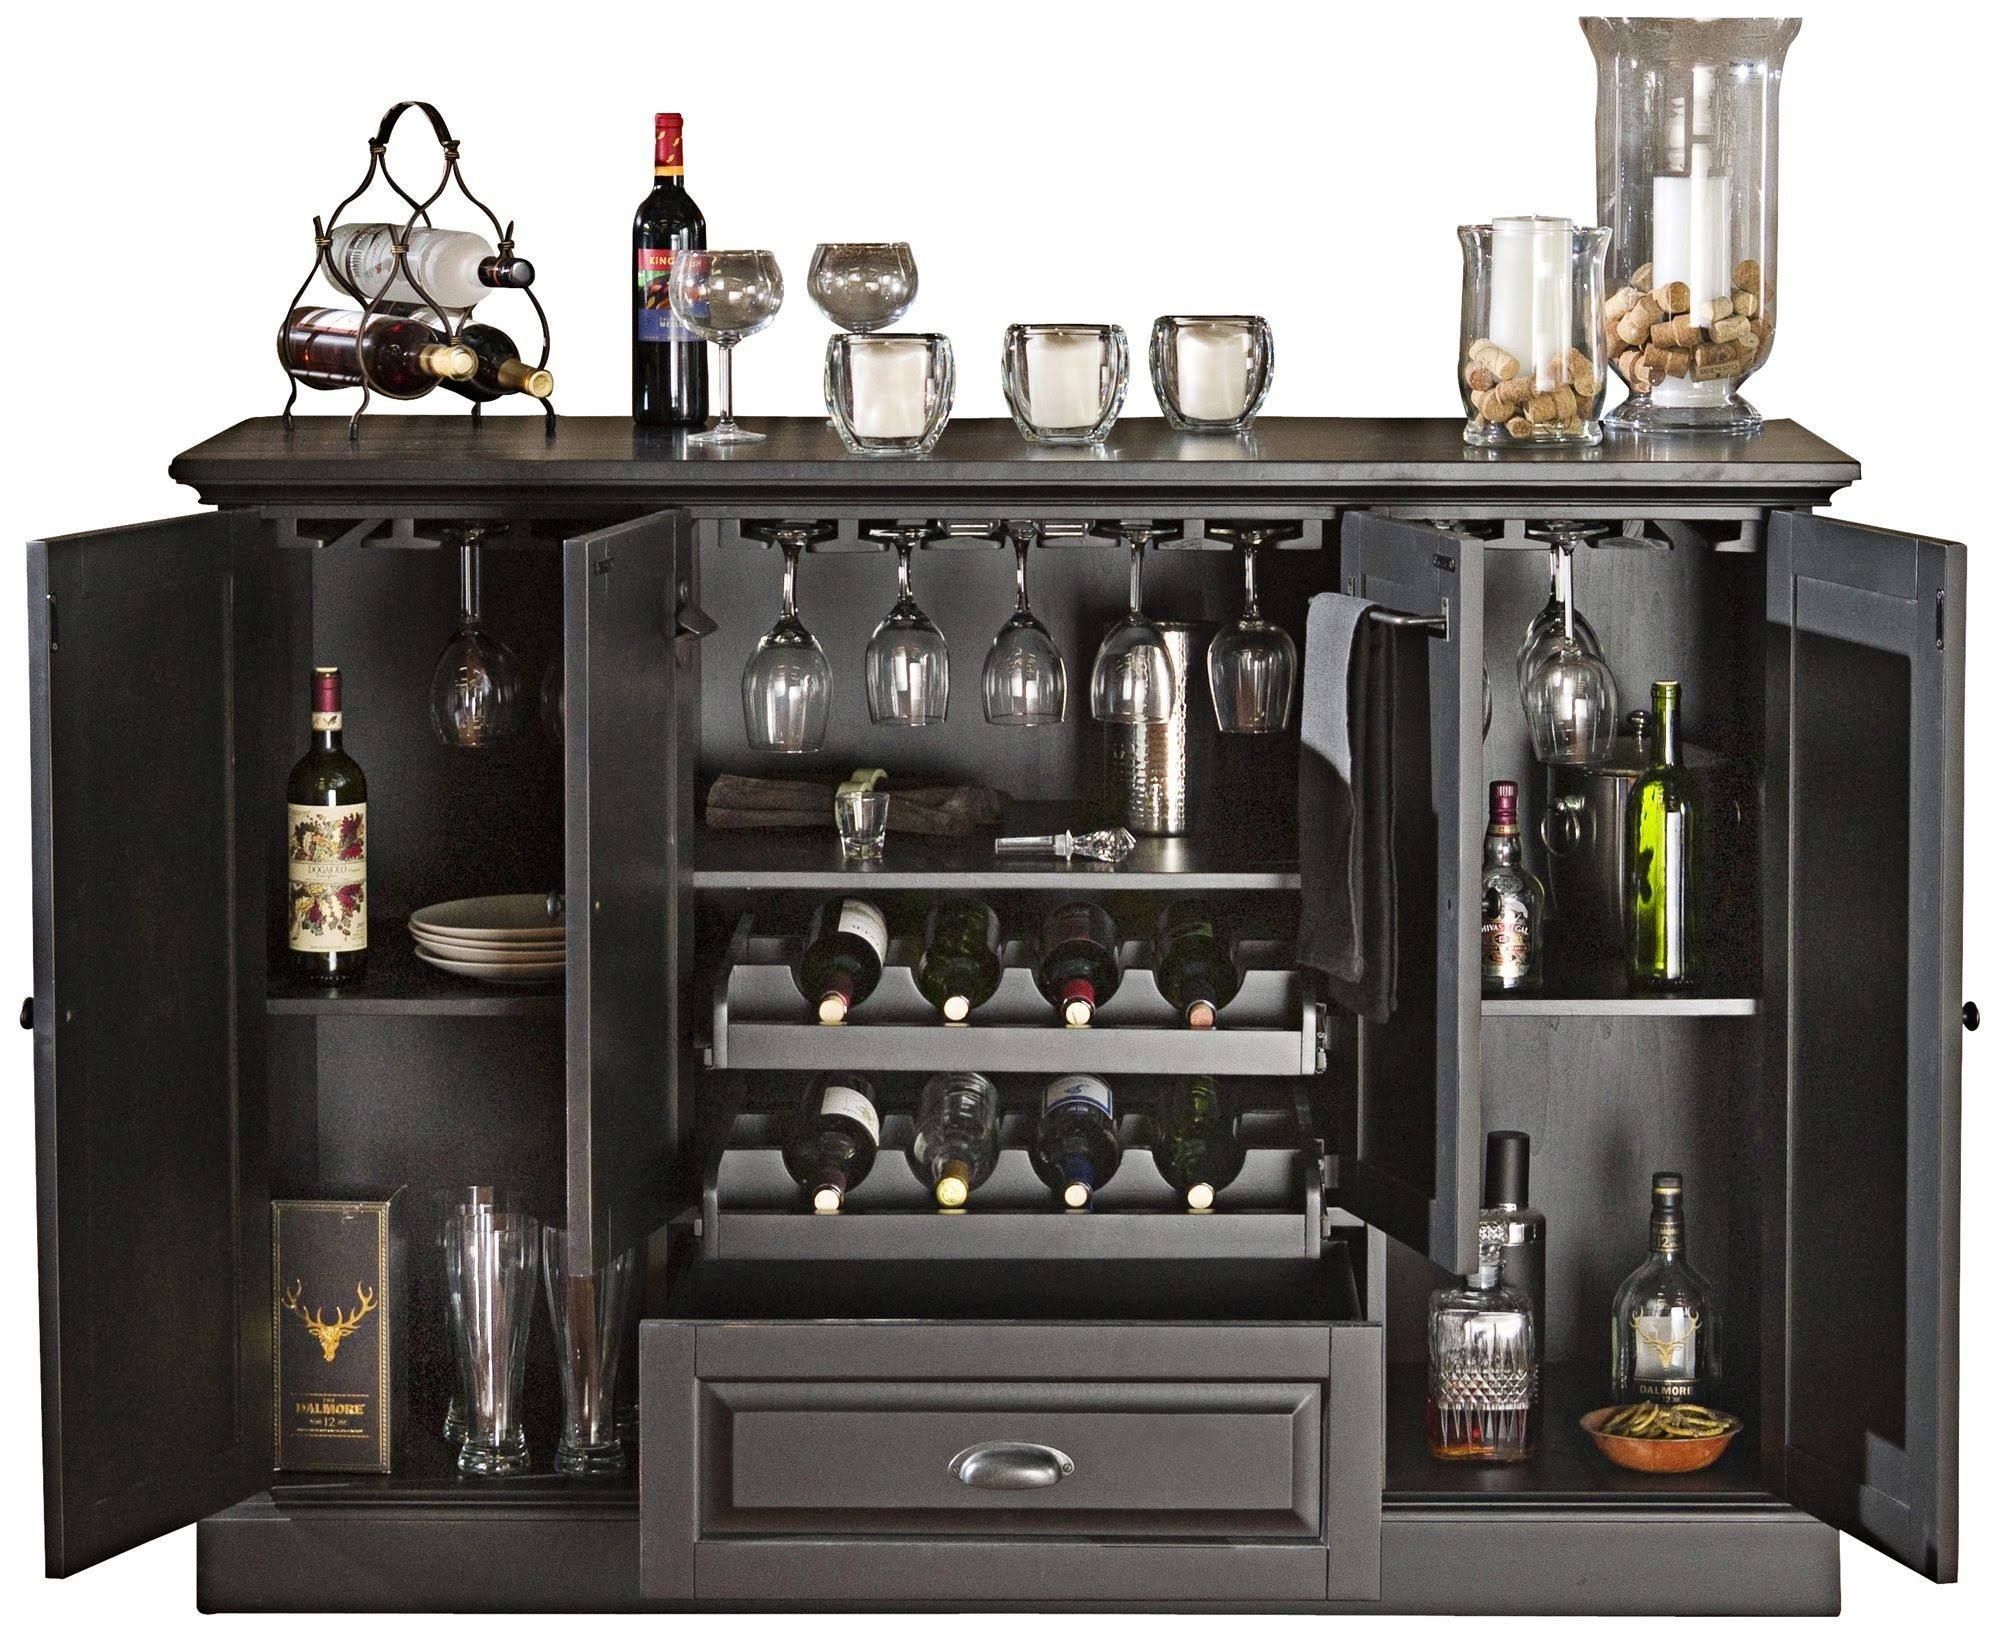 american heritage billiards bar sets carlotta door wood server american heritage billiards bar sets carlotta 4 door wood server in antique black 600055ab